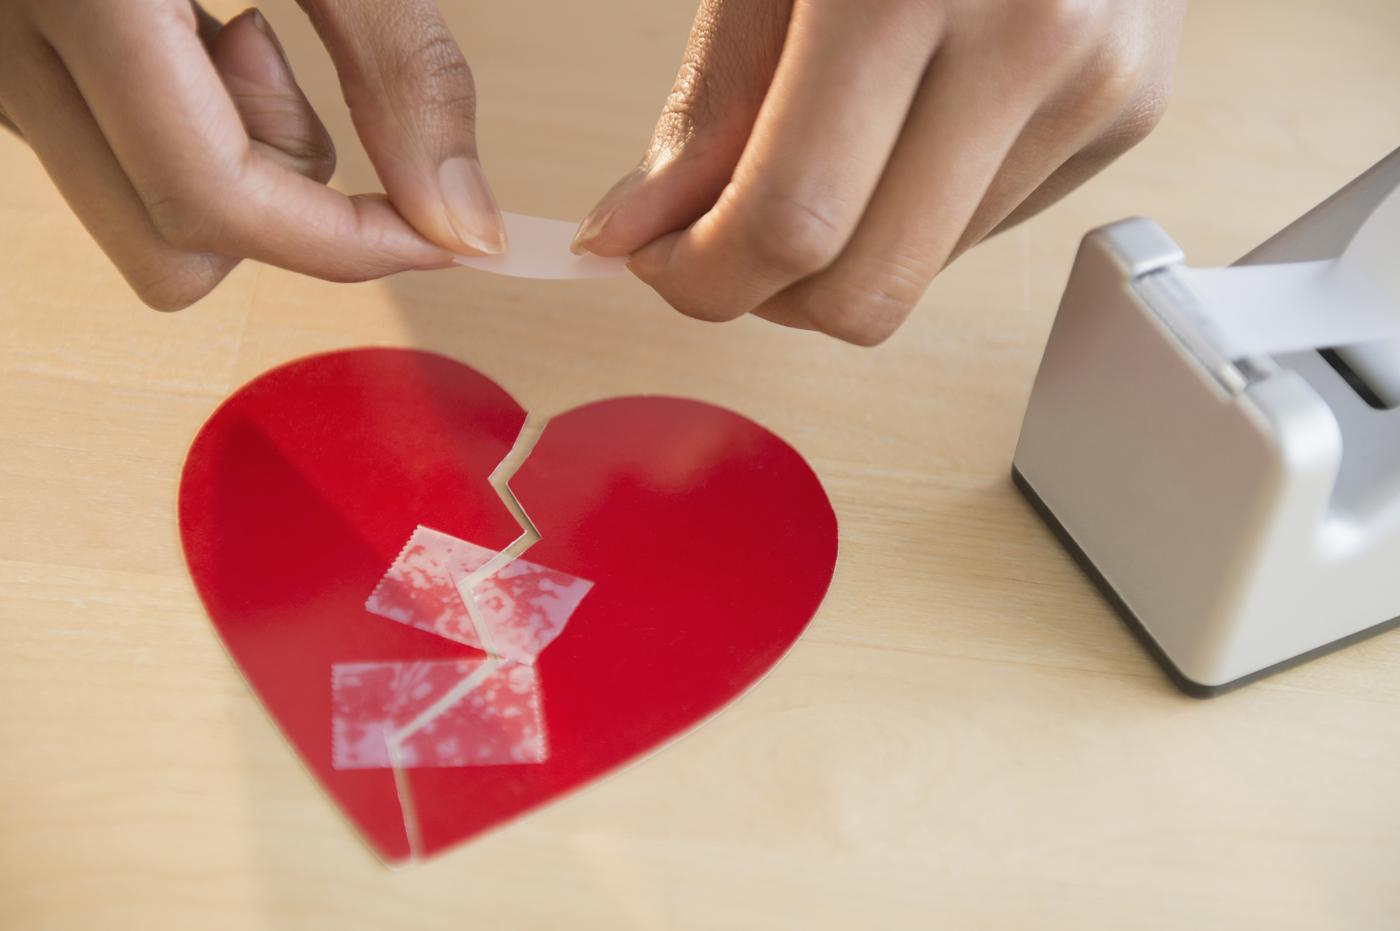 How to heal a broken heart – essential advice when you've just been dumped